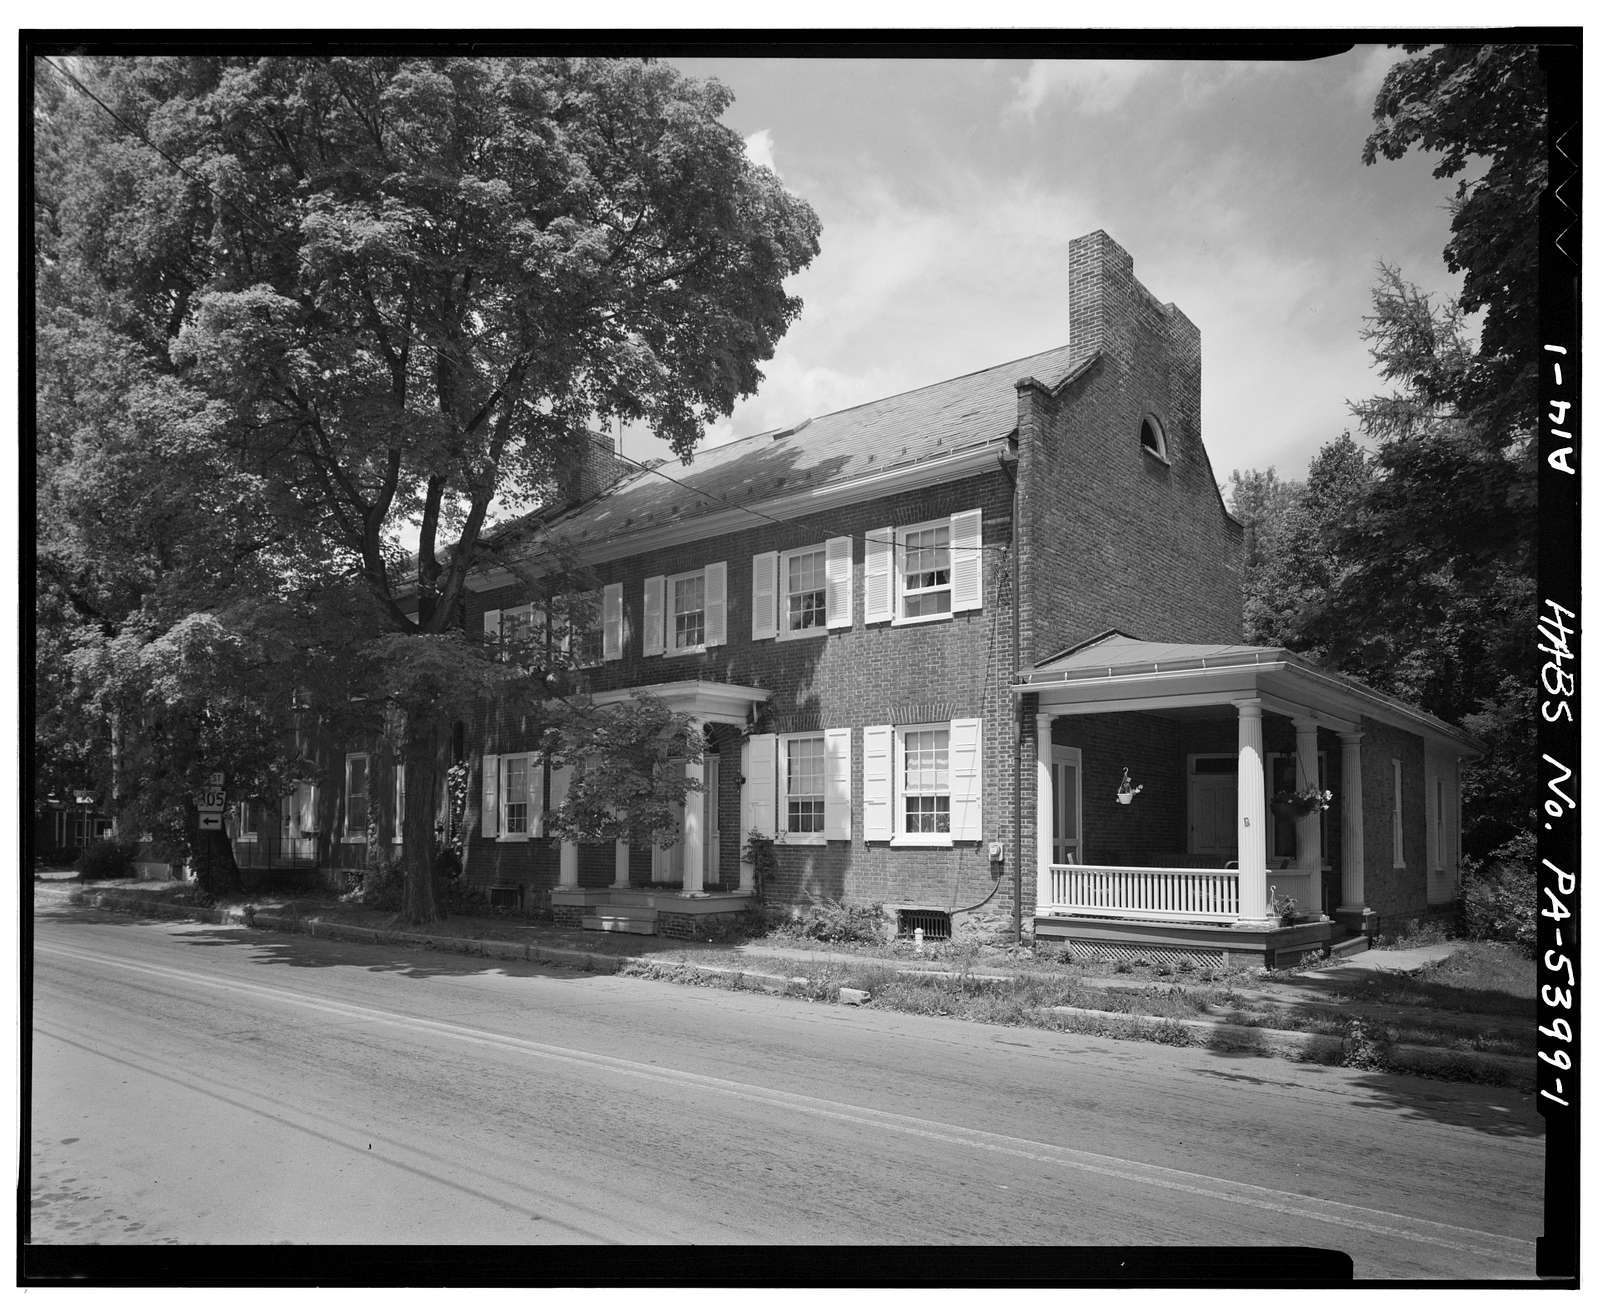 Israel Grafius House, 215 Main Street, Alexandria, Huntingdon County, PA